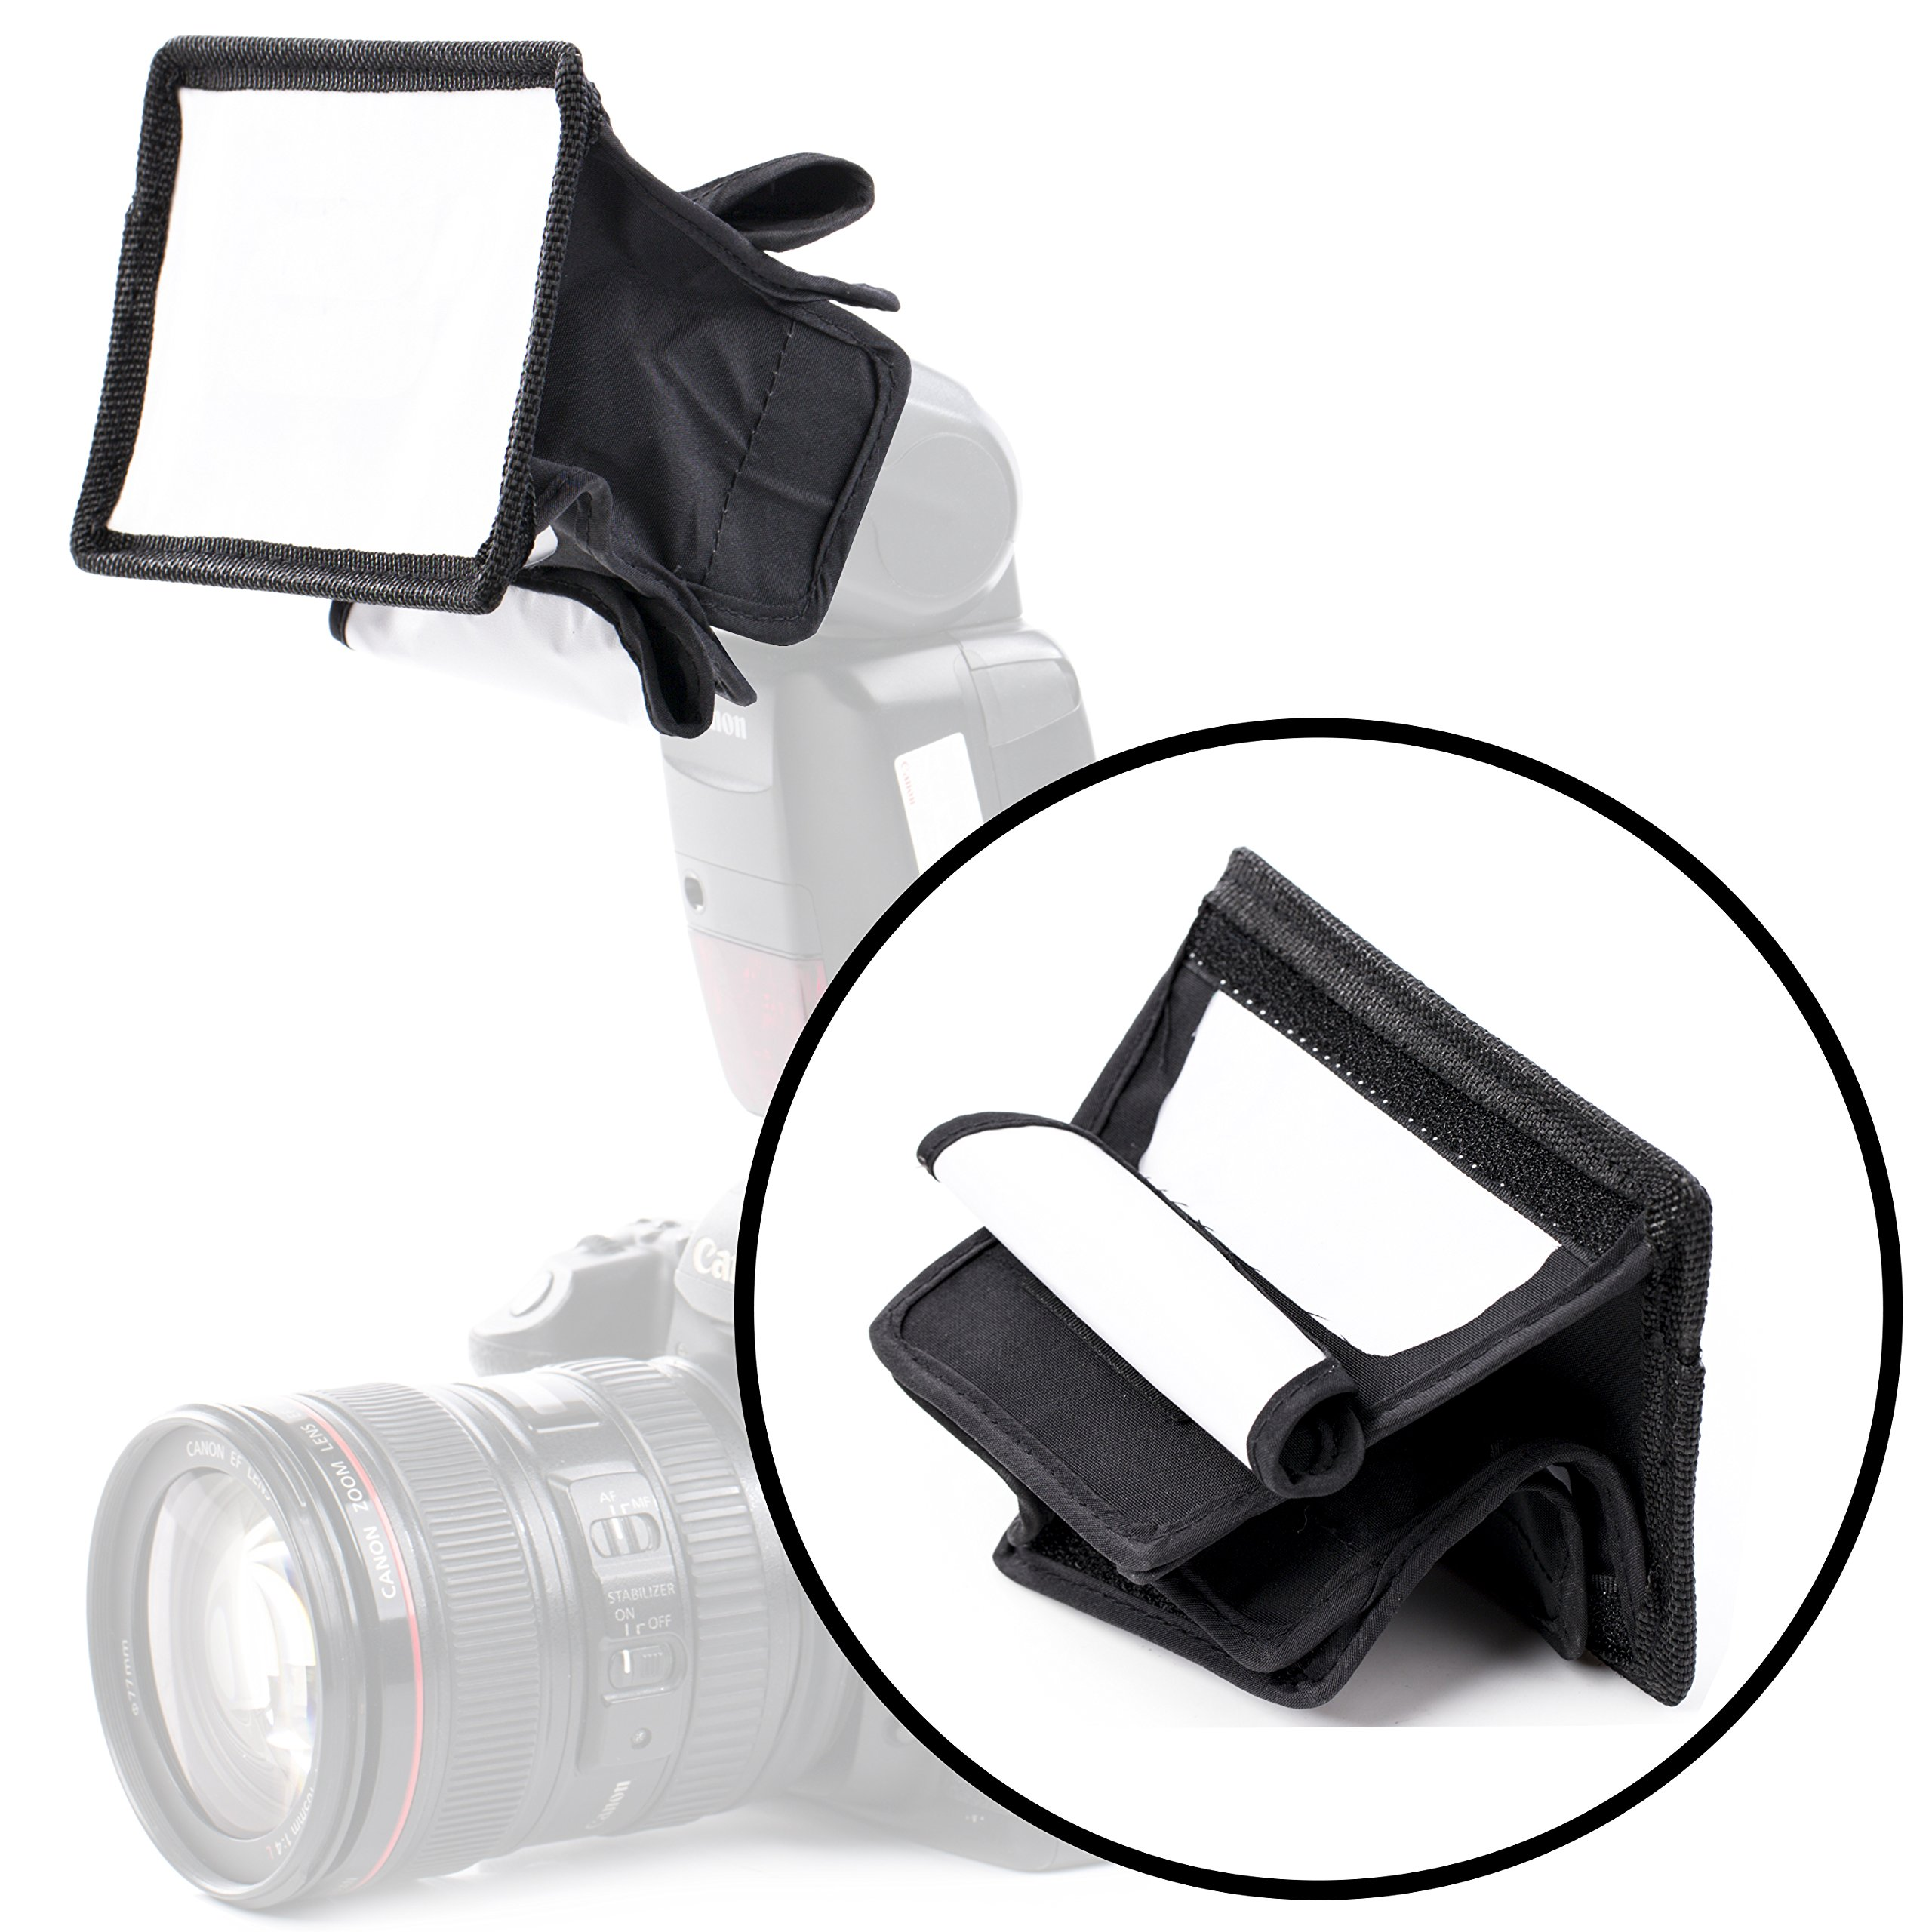 Movo MP-LB1 3.5x5 Mini Speedlight Fabric Flash Softbox Diffuser with Roll-Up Windows for Fill Light, Bounce Control - Universal Design Fits Most Flashes by Movo